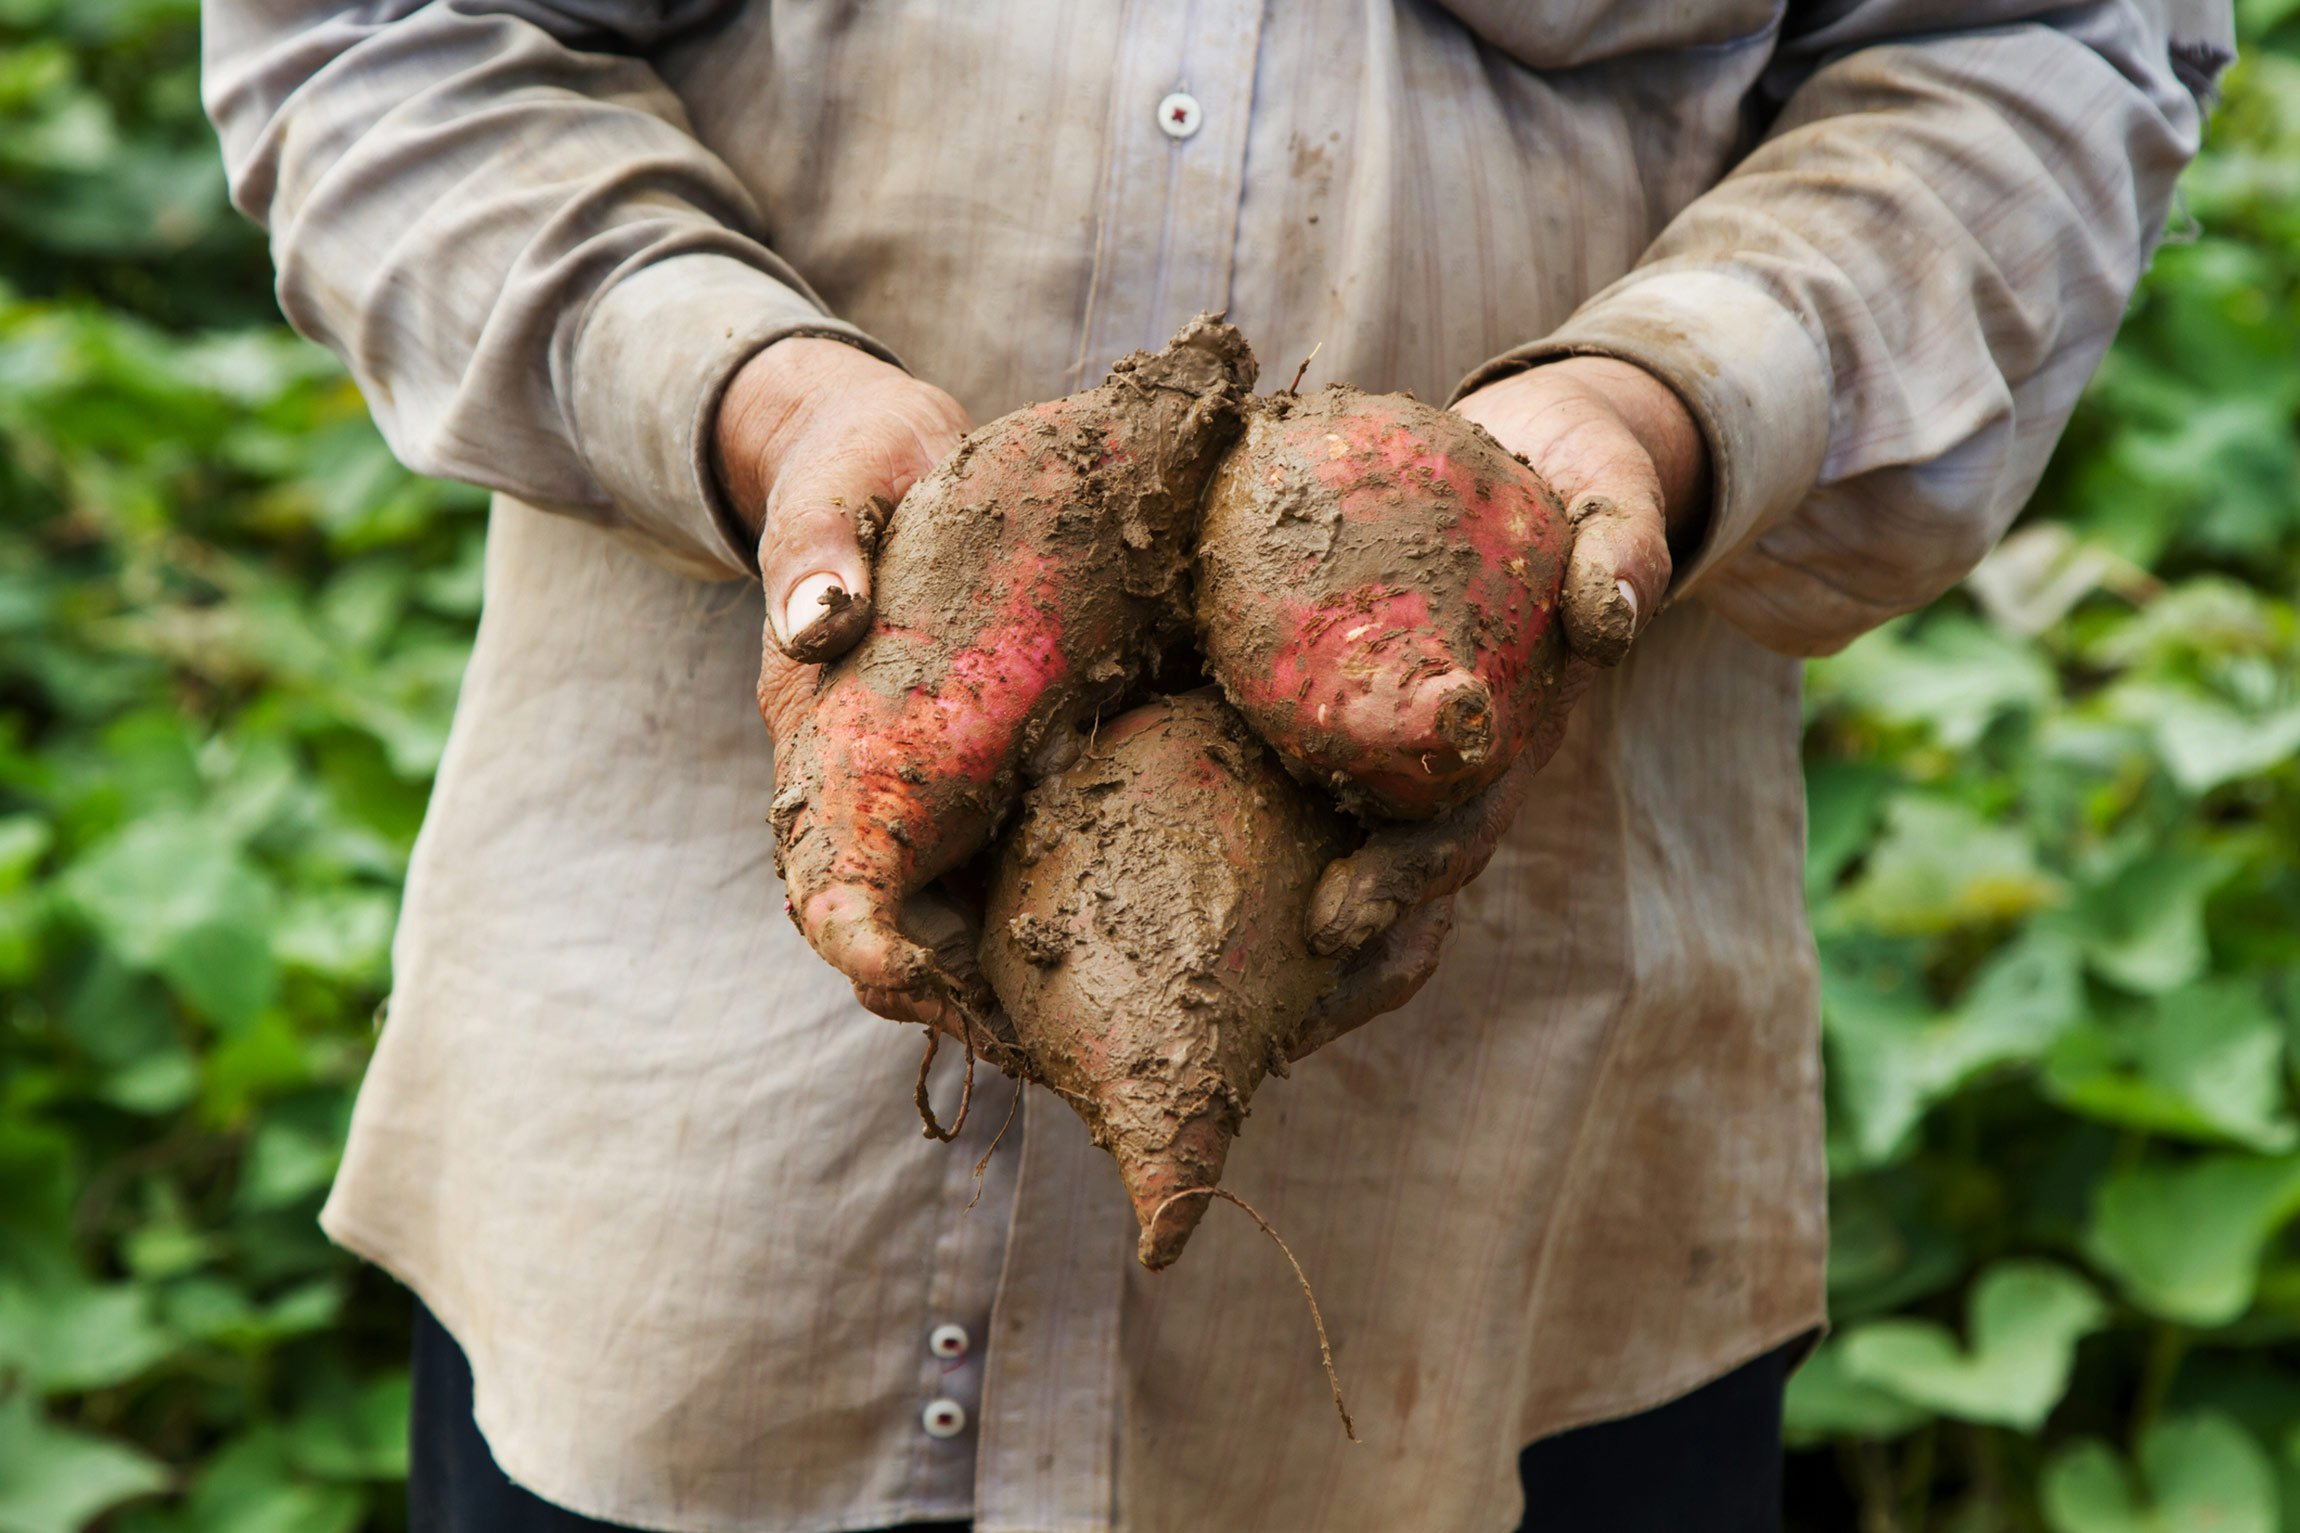 Holding freshly picked sweet potatoes